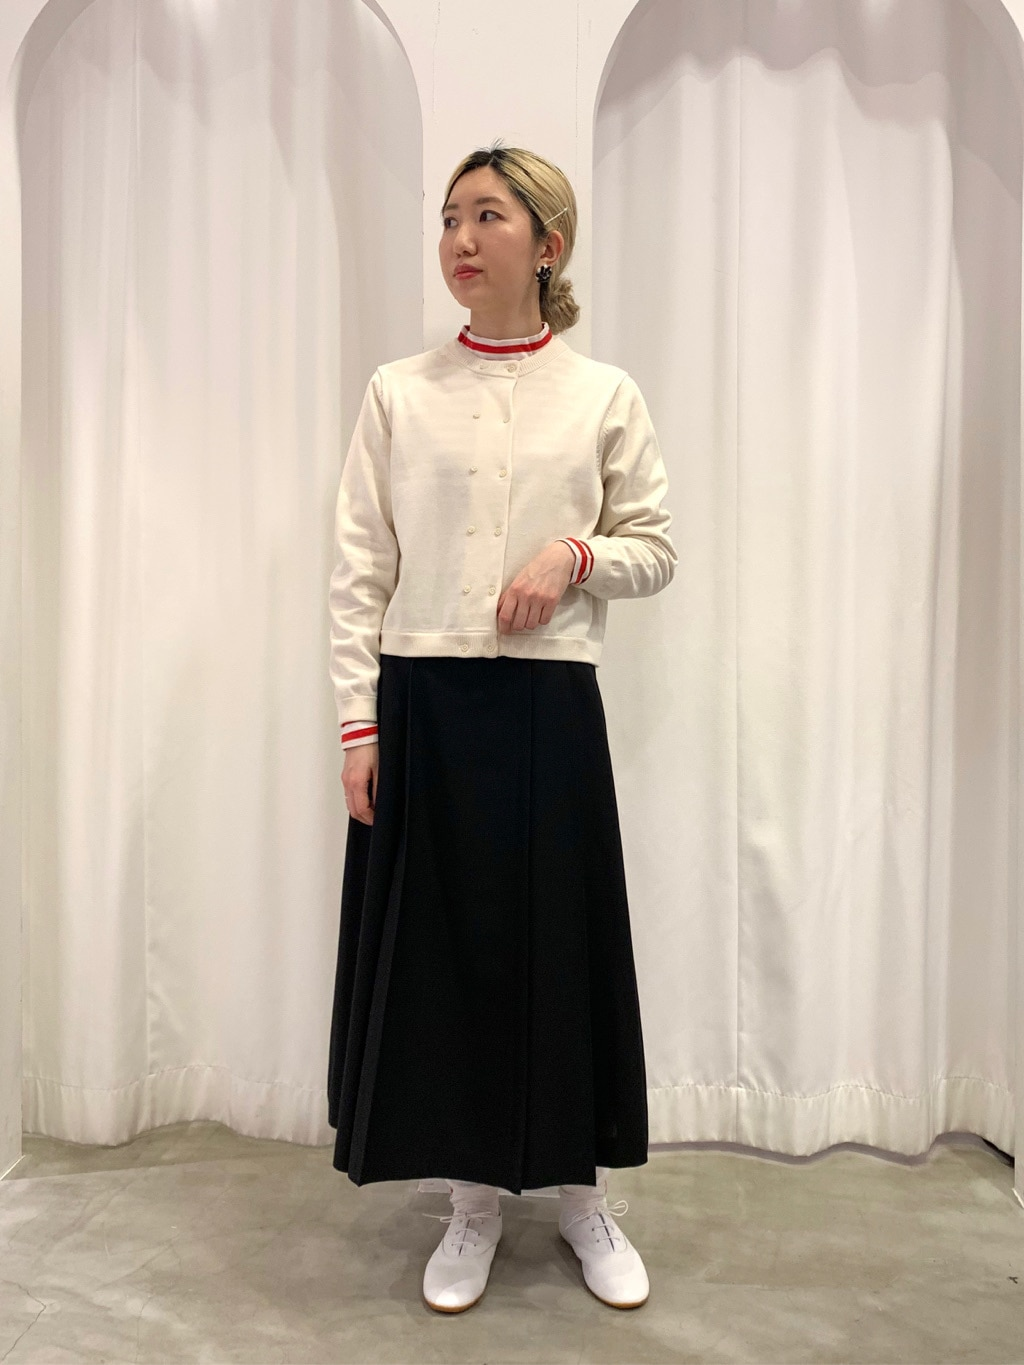 Dot and Stripes CHILD WOMAN ラフォーレ原宿 身長:160cm 2021.02.20